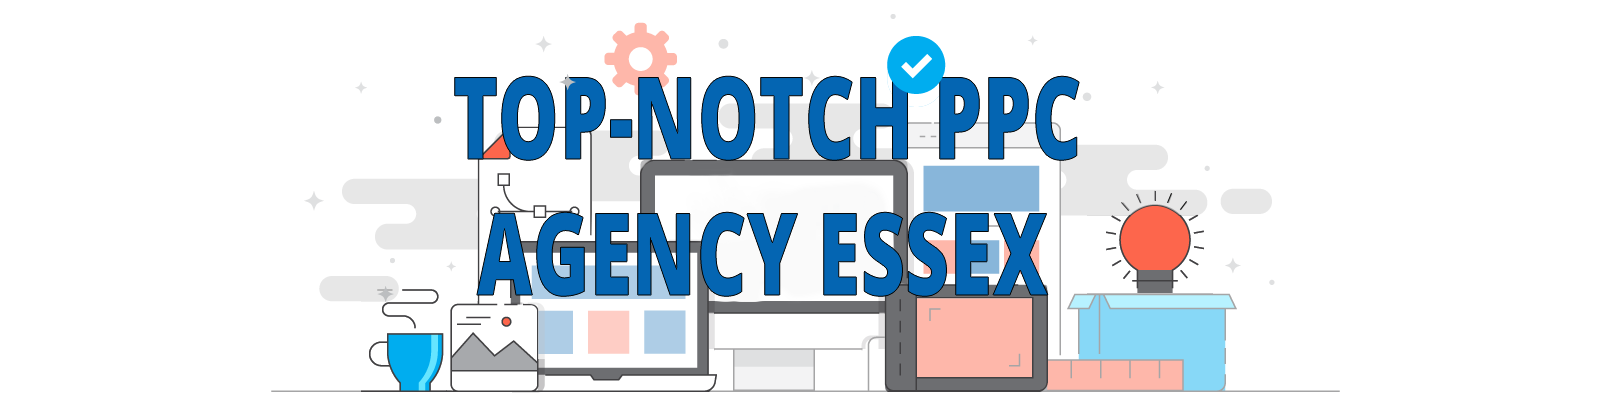 seek social top notch ppc agency essex header with transparent background